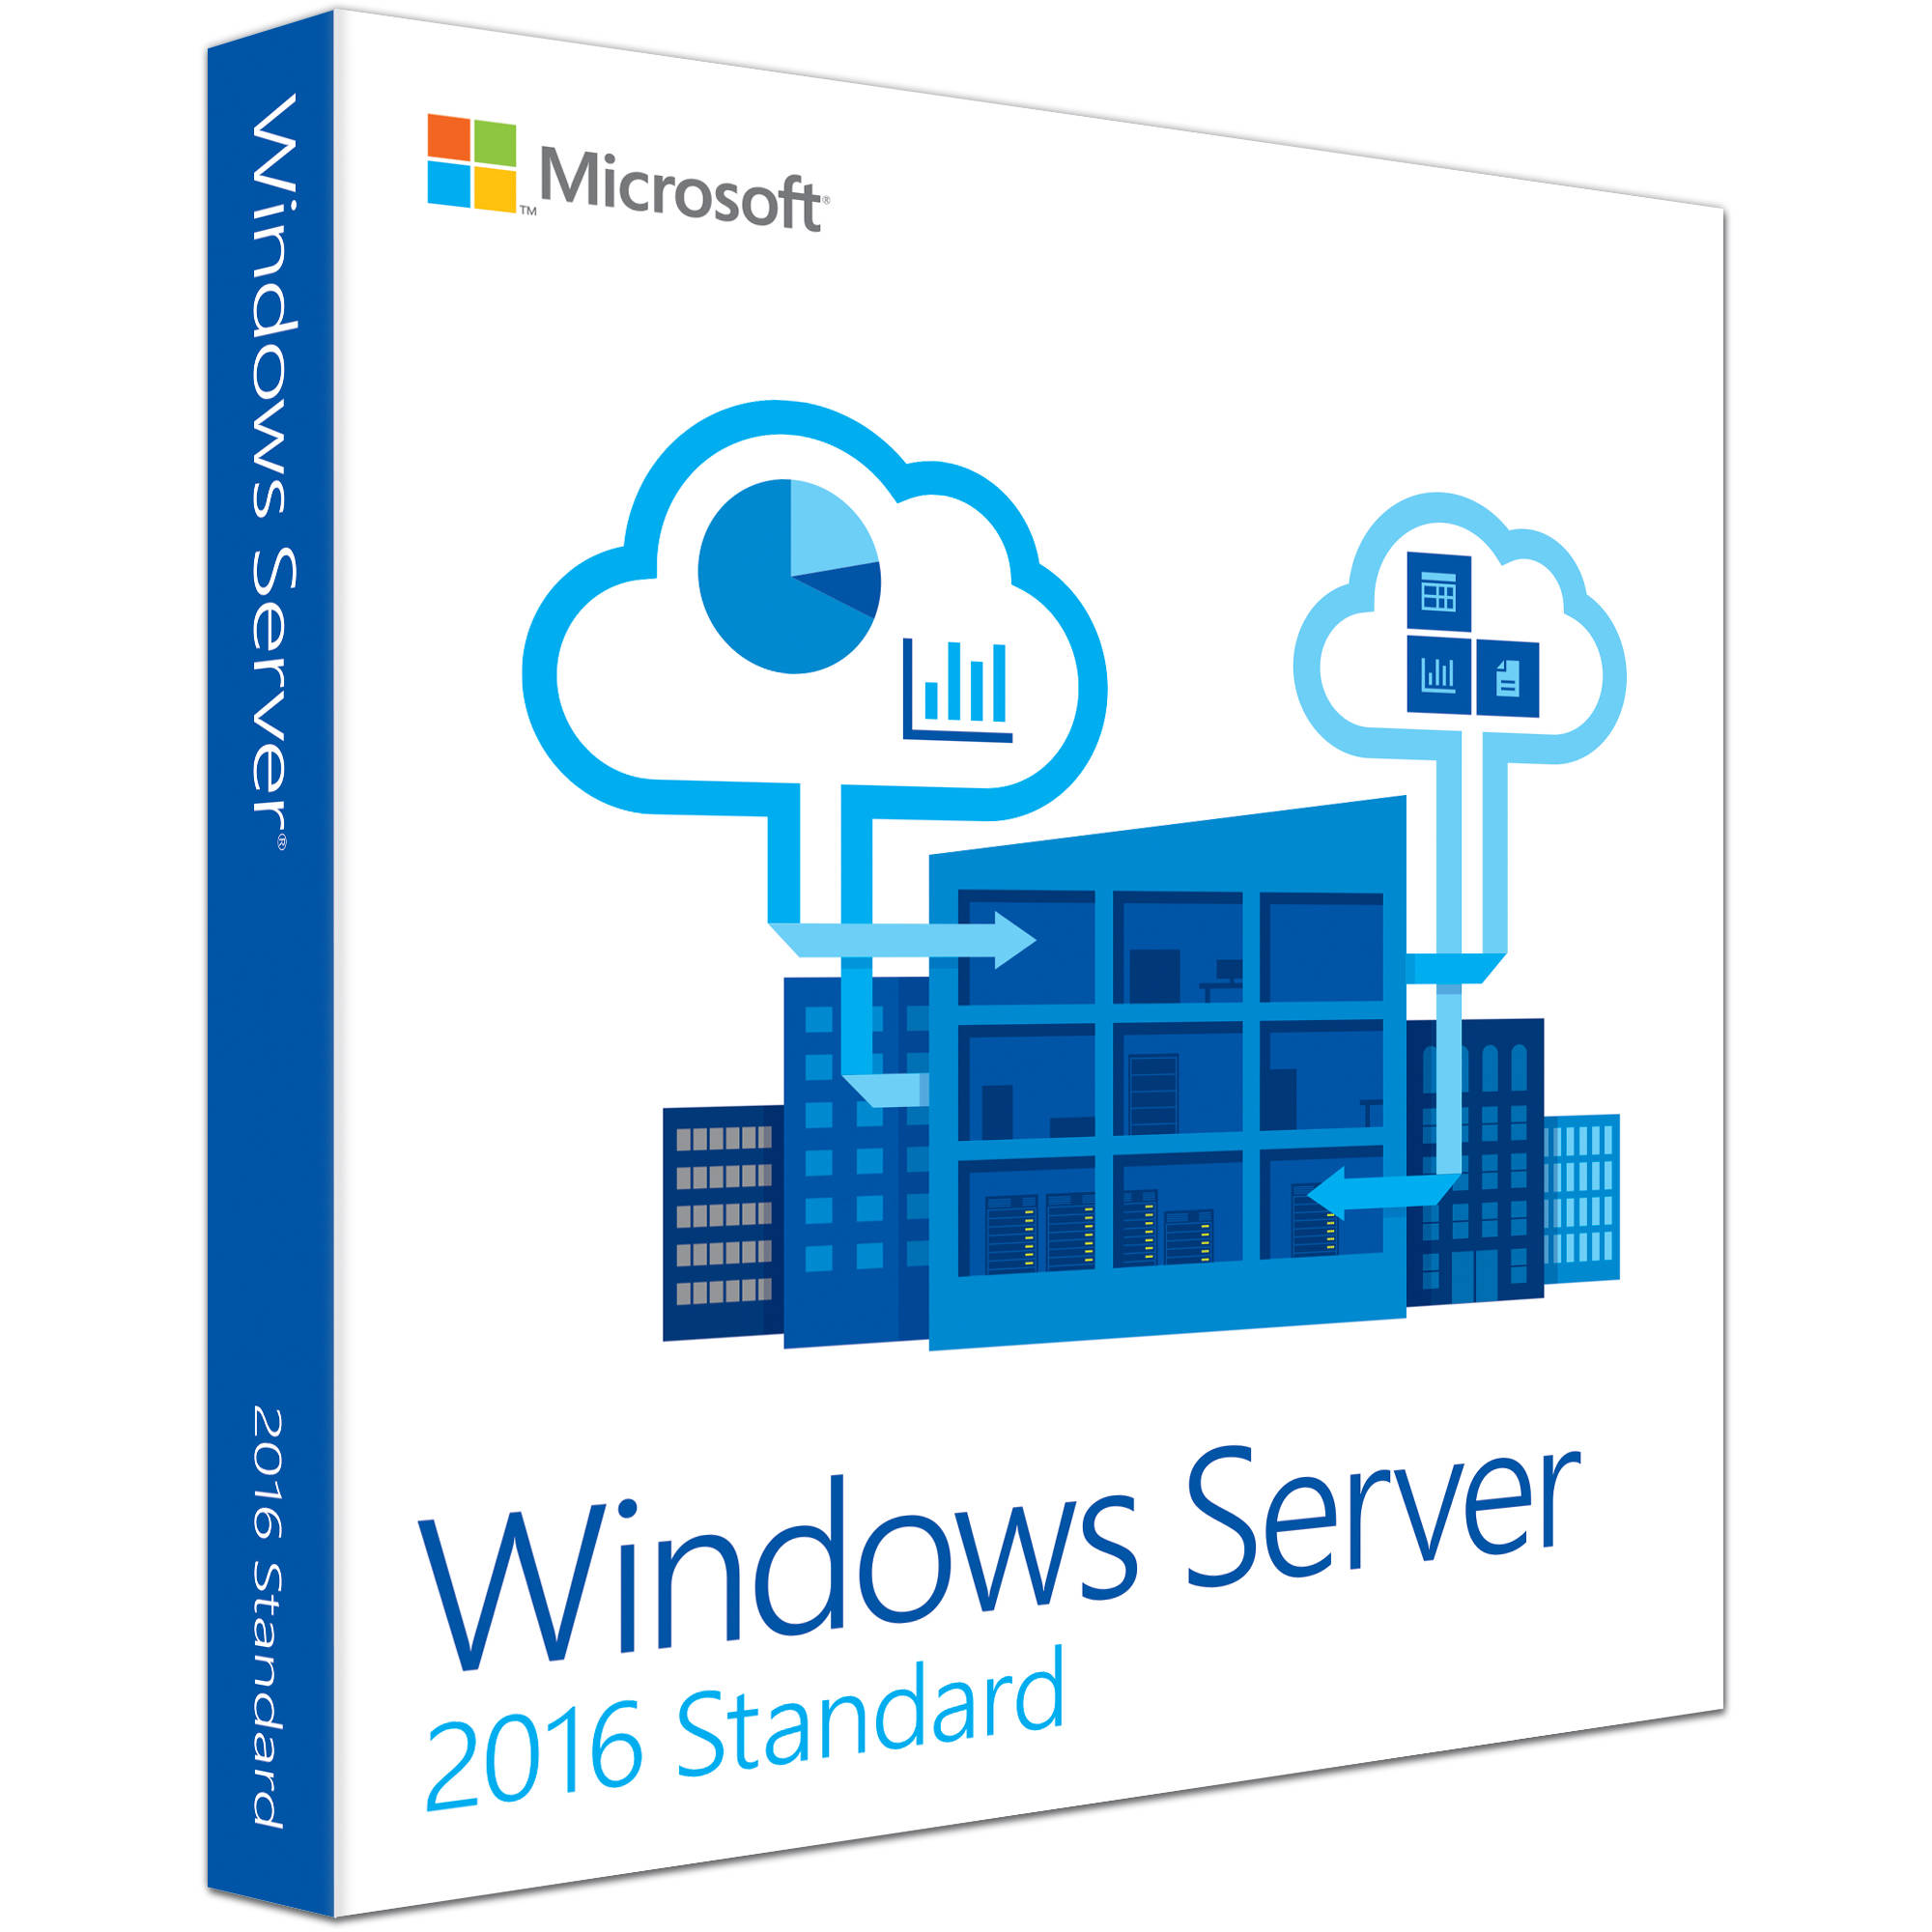 Windows Server 2016 Standard (64bit)